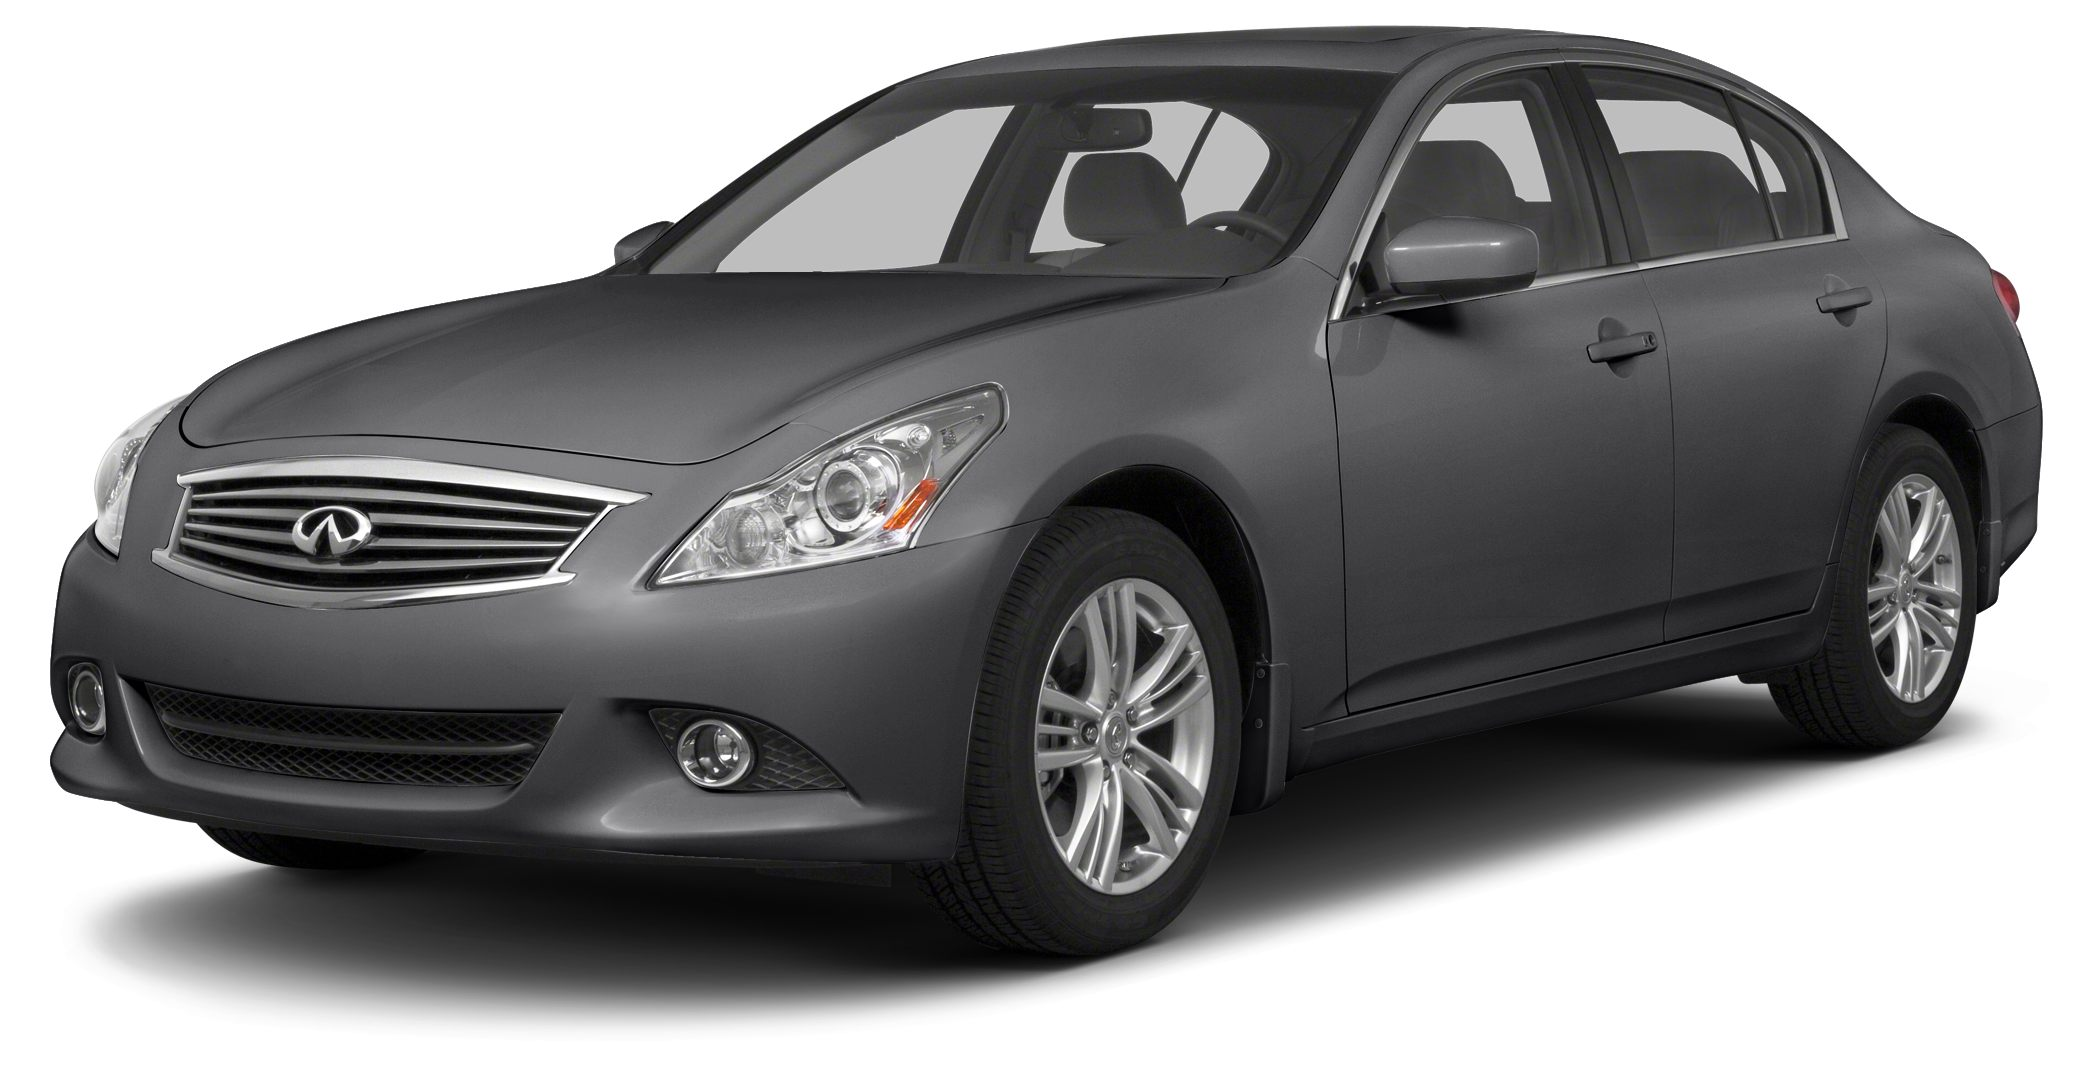 2013 INFINITI G37 Journey Miles 23530Color Graphite Shadow Stock PN17200 VIN JN1CV6AP8DM7254